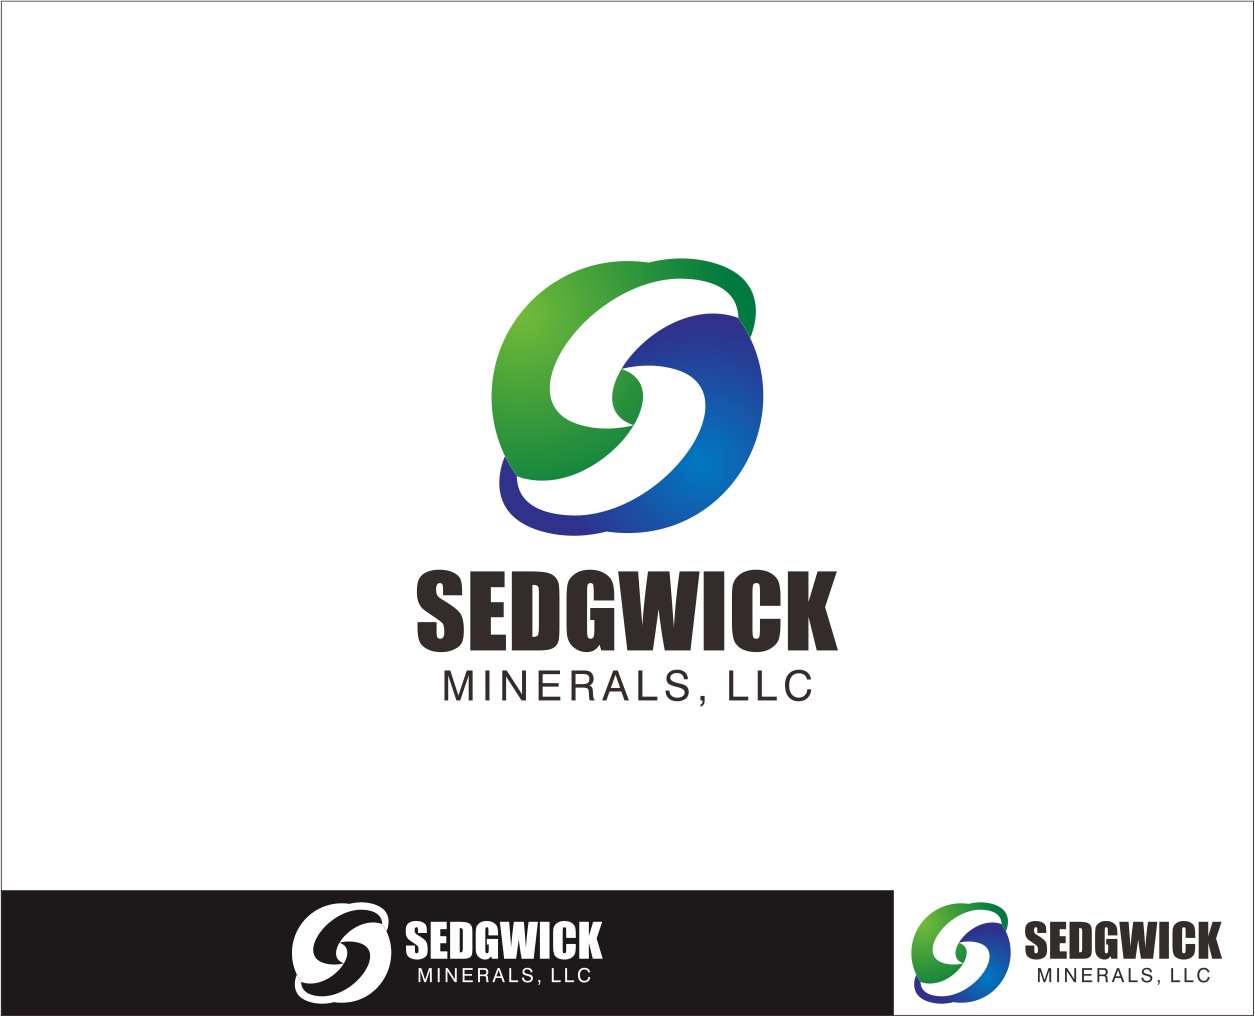 Logo Design by Armada Jamaluddin - Entry No. 59 in the Logo Design Contest Inspiring Logo Design for Sedgwick Minerals, LLC.